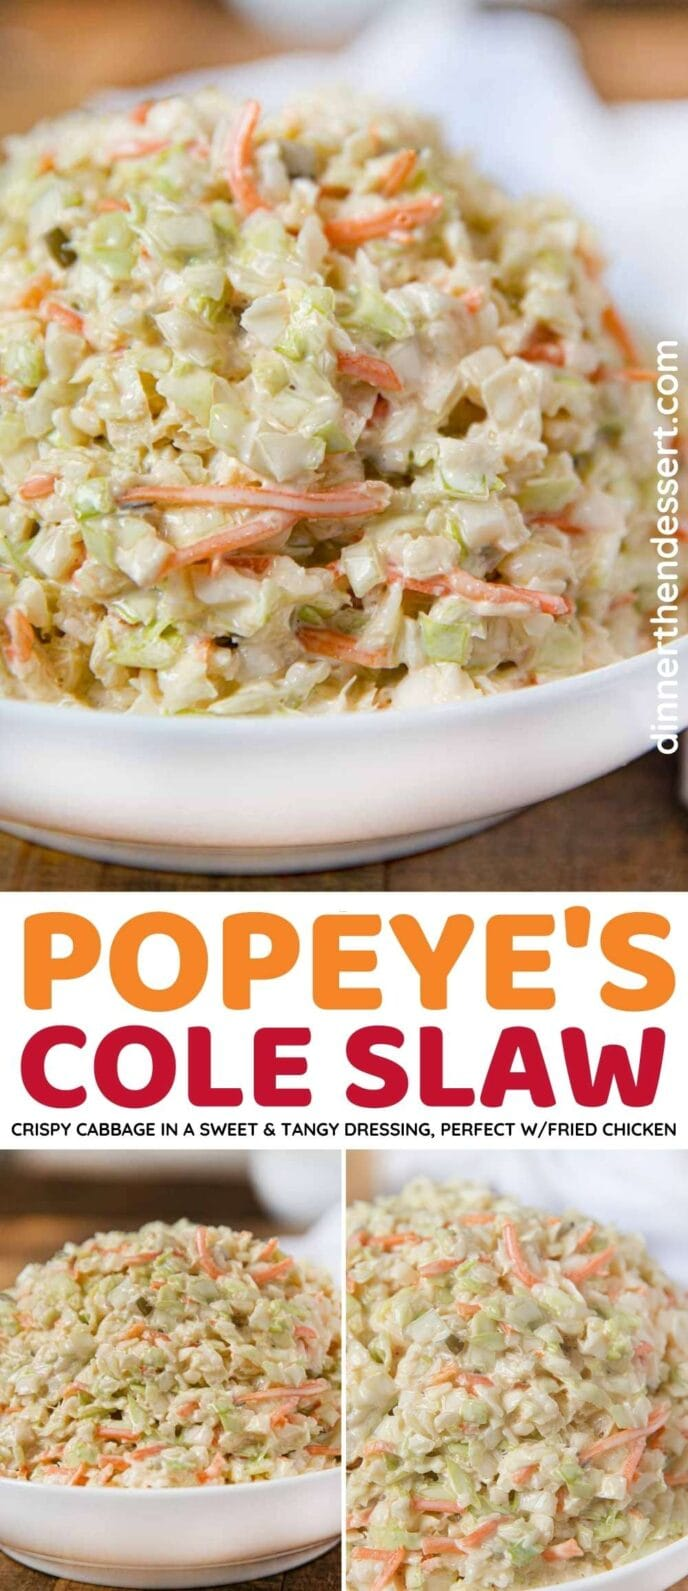 Popeye's Cole Slaw Collage